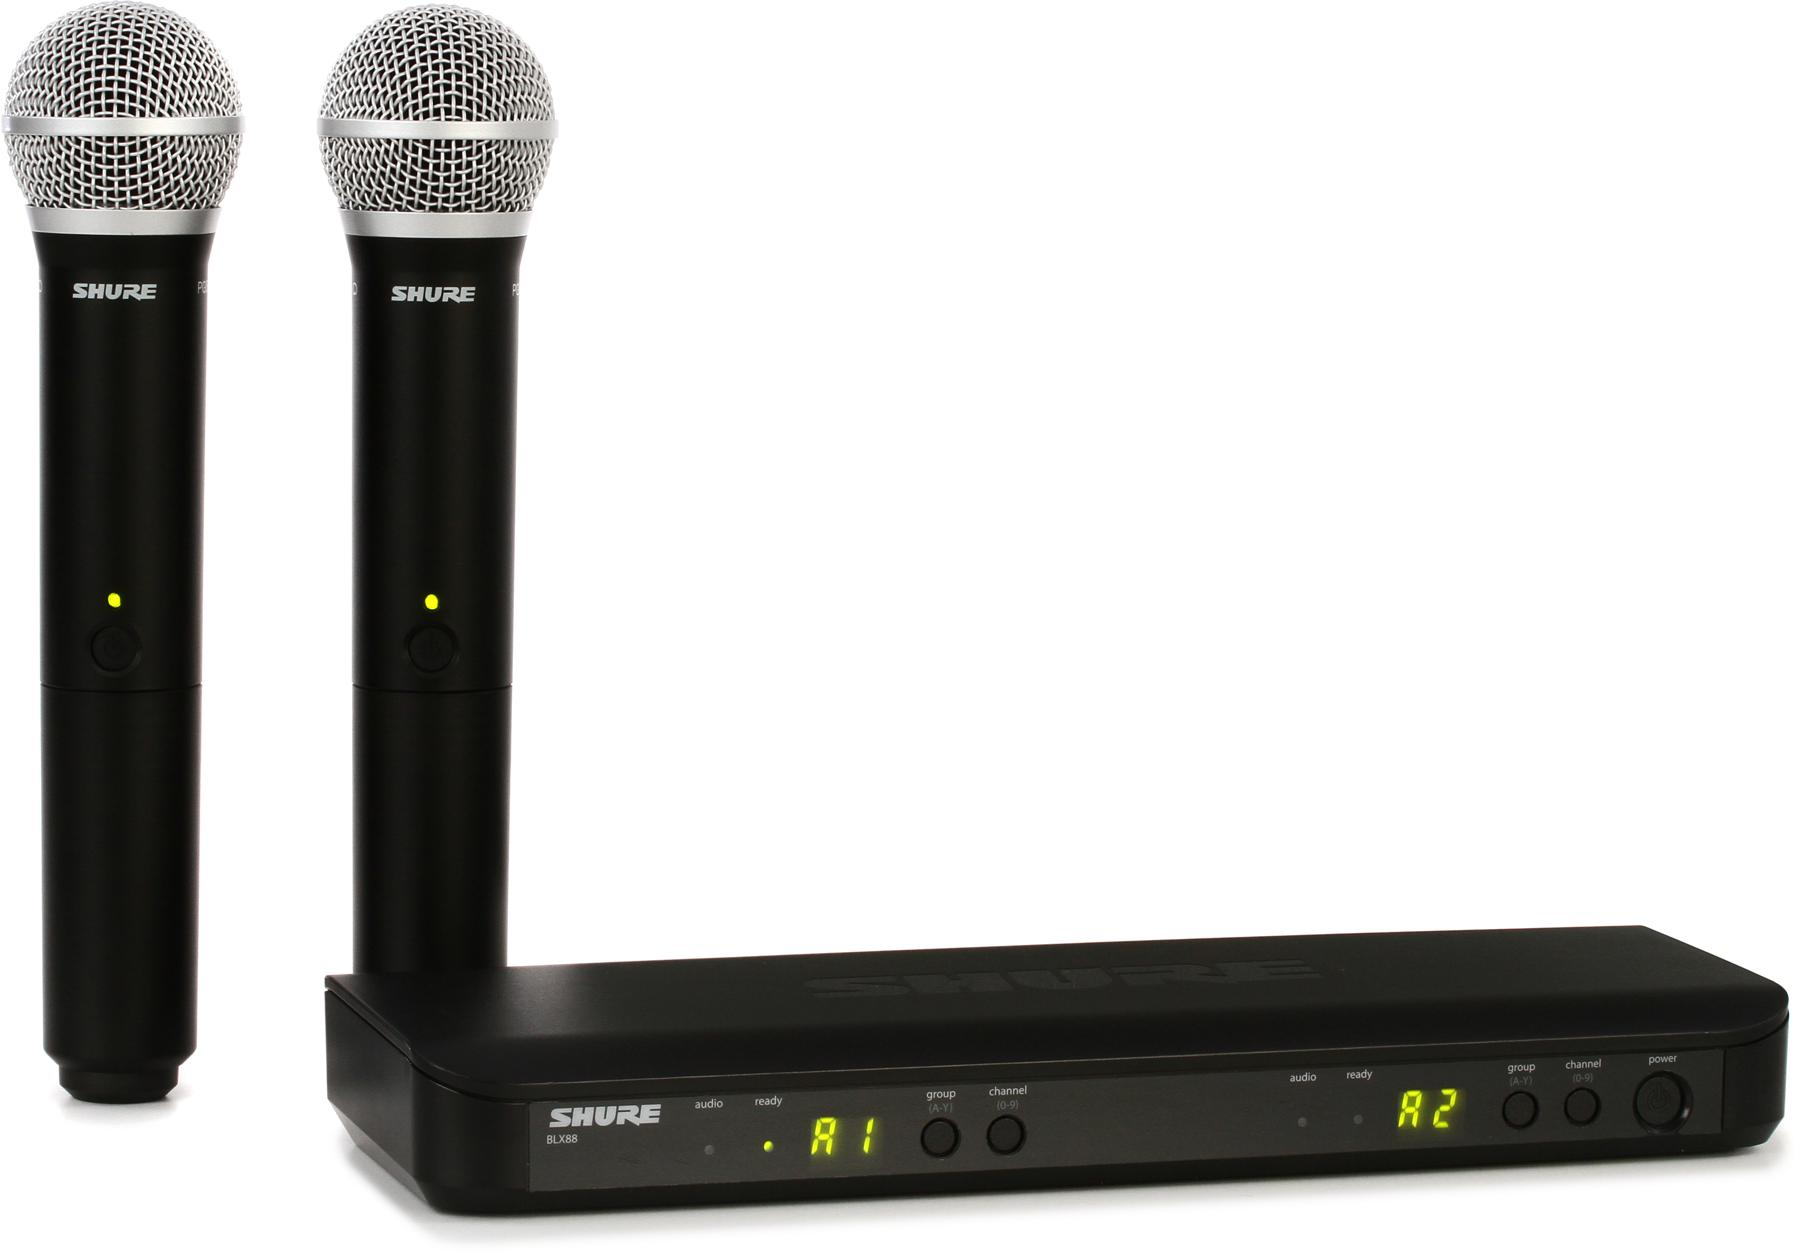 1. Shure BLX288/PG58 Dual-Channel Wireless System